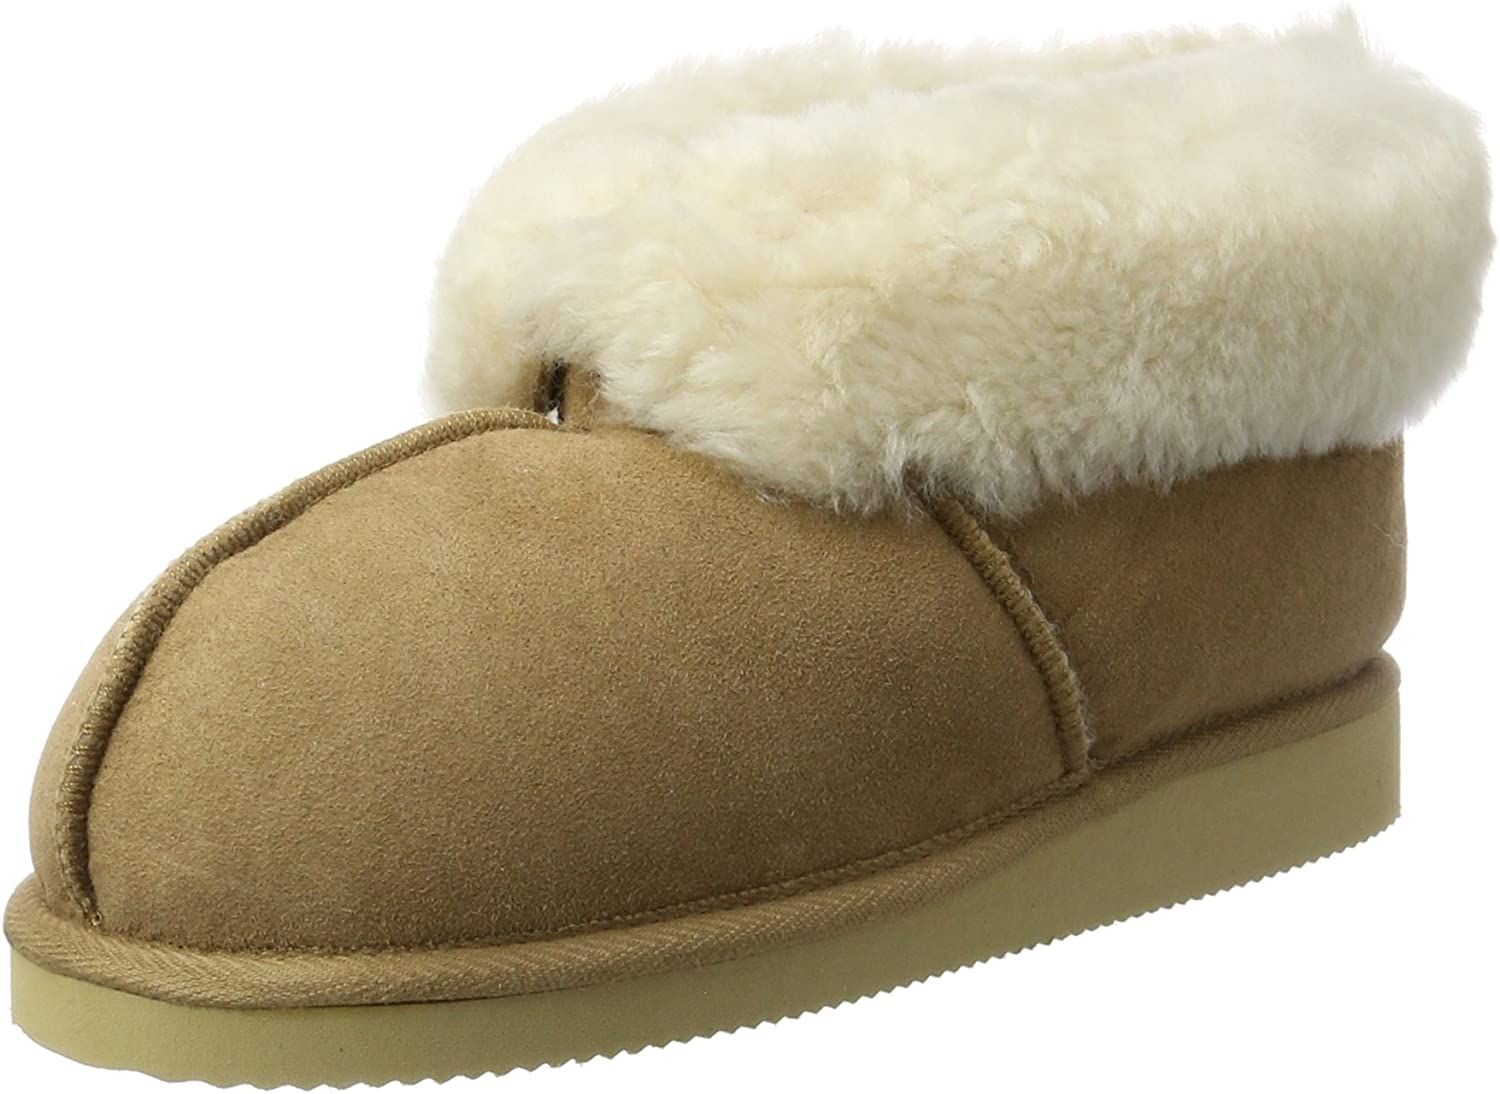 Hans Herrmann Collection Unisex Adults' HHC Slippers